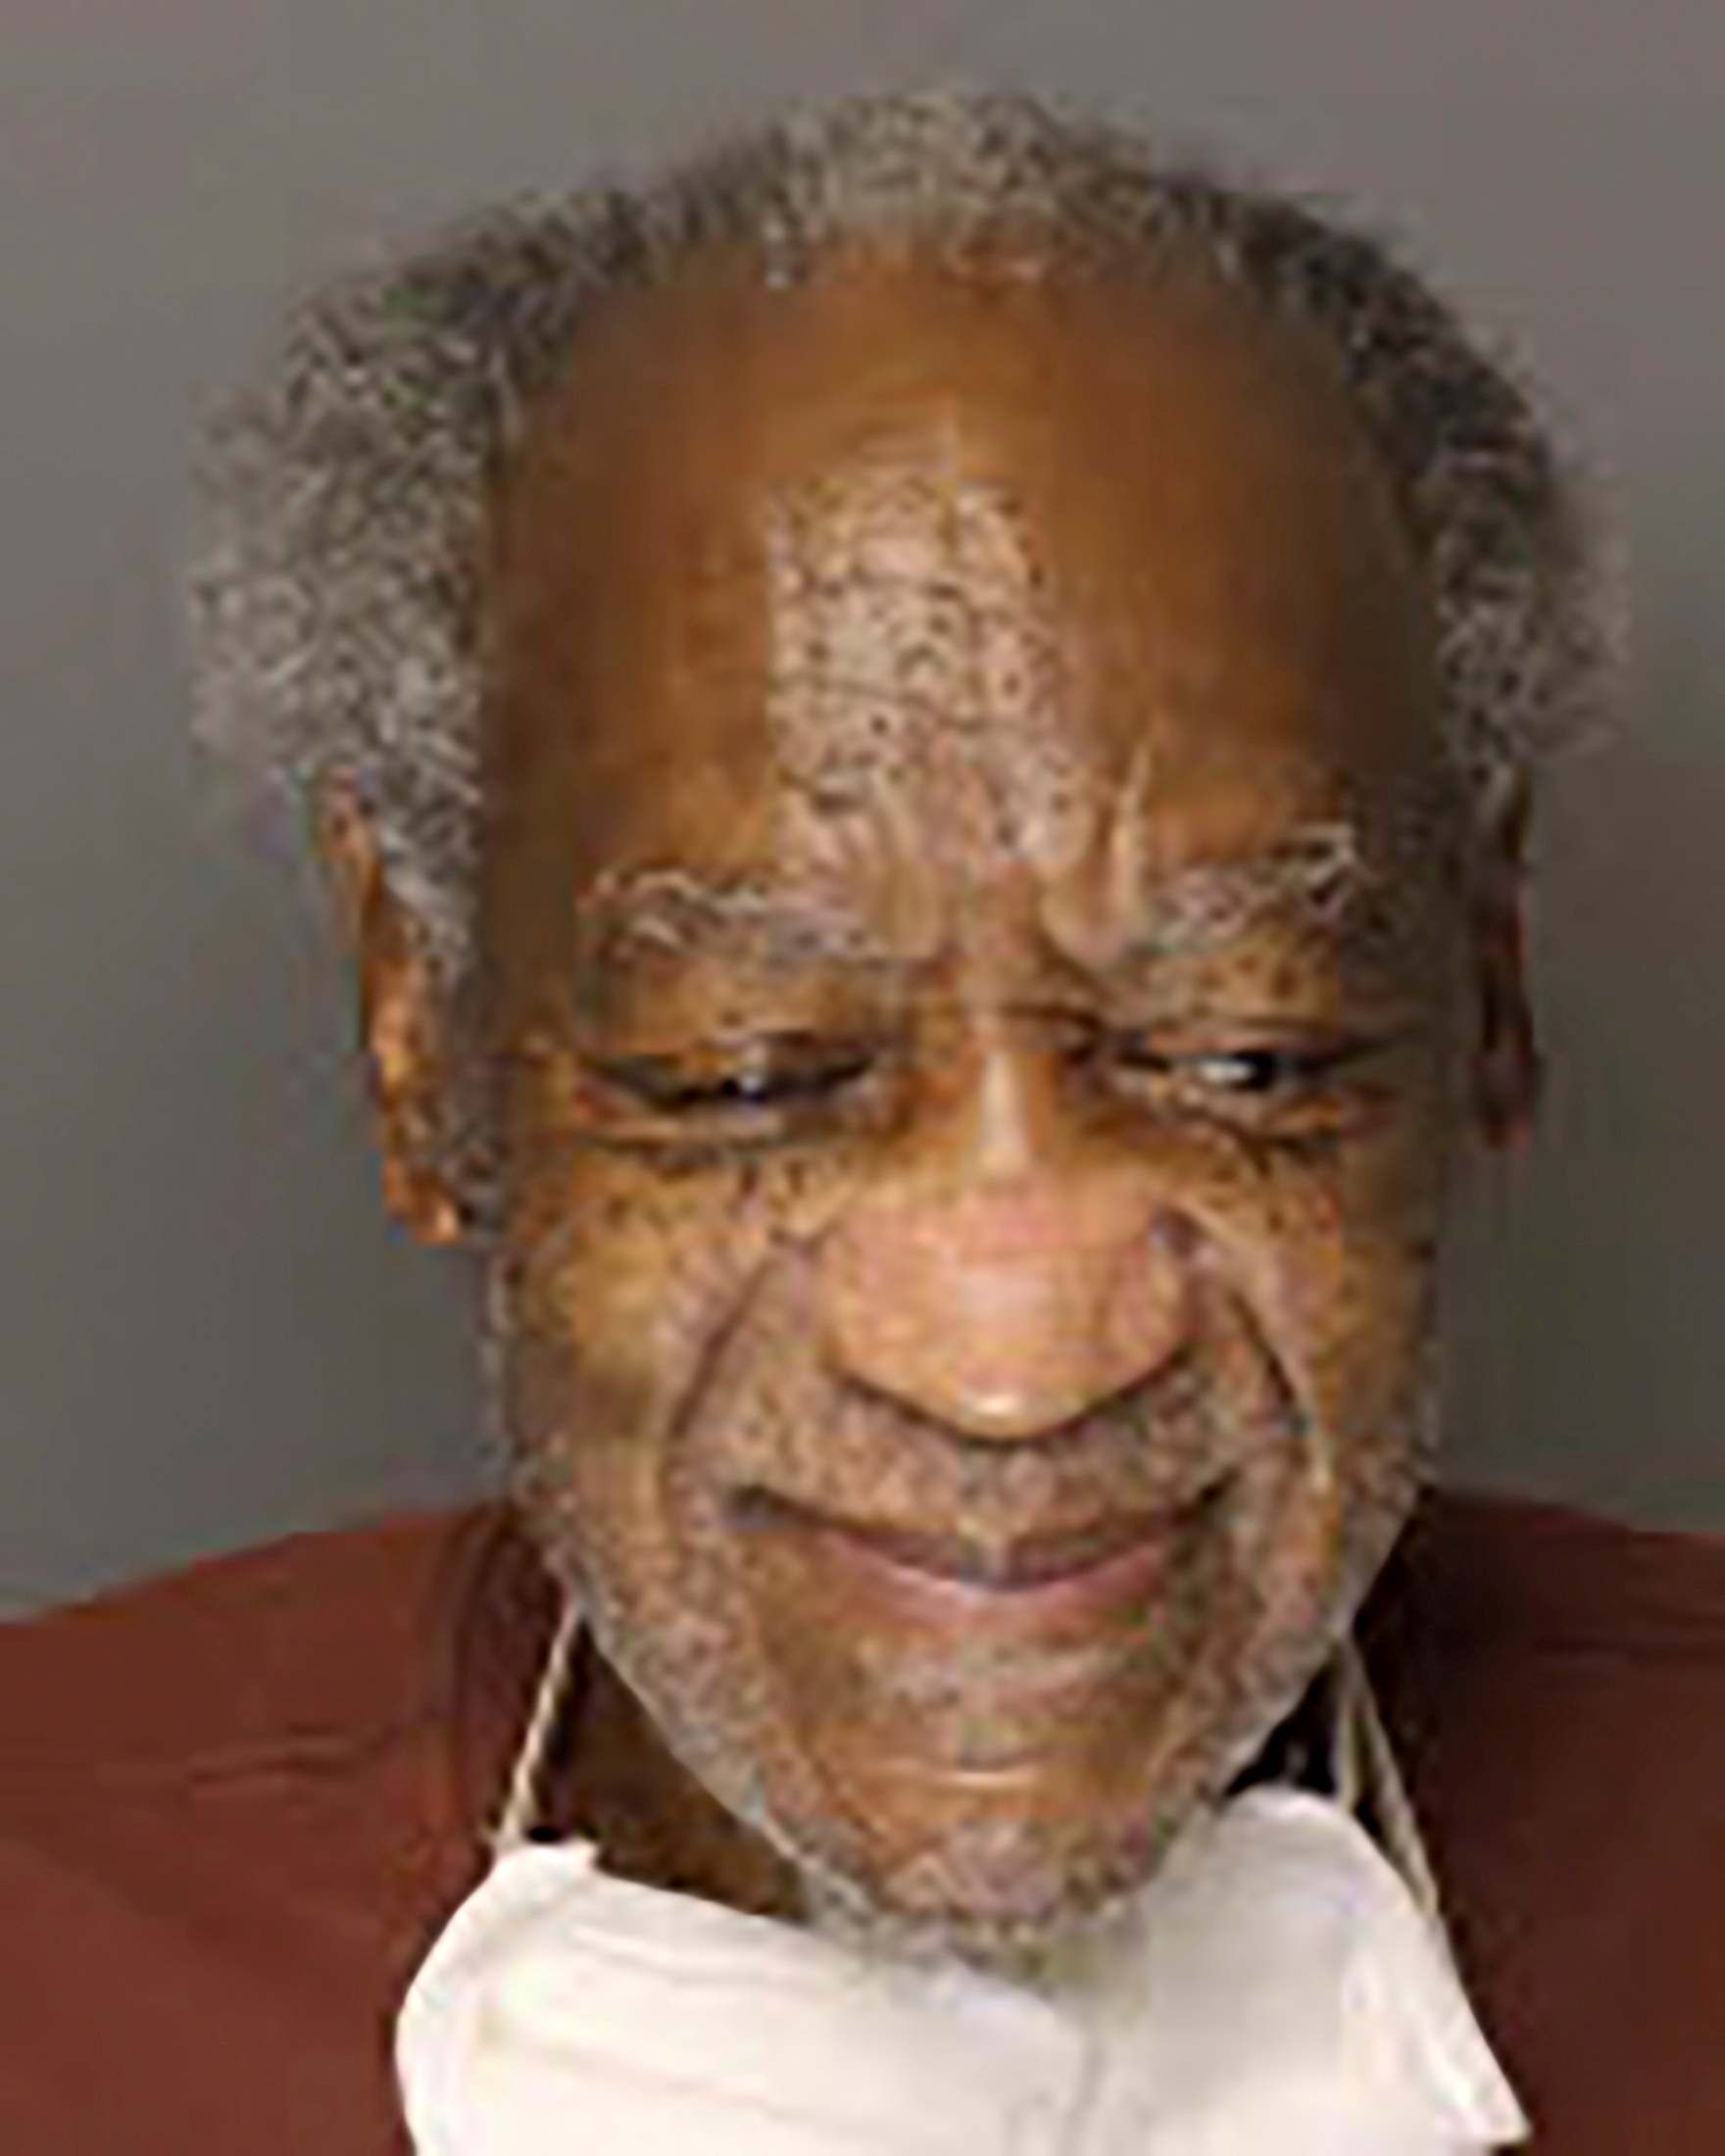 Actor and comedian Bill Cosby poses with a mask under his chin in a photograph taken at State Correctional Institution (SCI) Phoenix in Skippack Township, Pennsylvania, U.S. September 4, 2020.Pennsylvania Department of Corrections/Handout via REUTERS